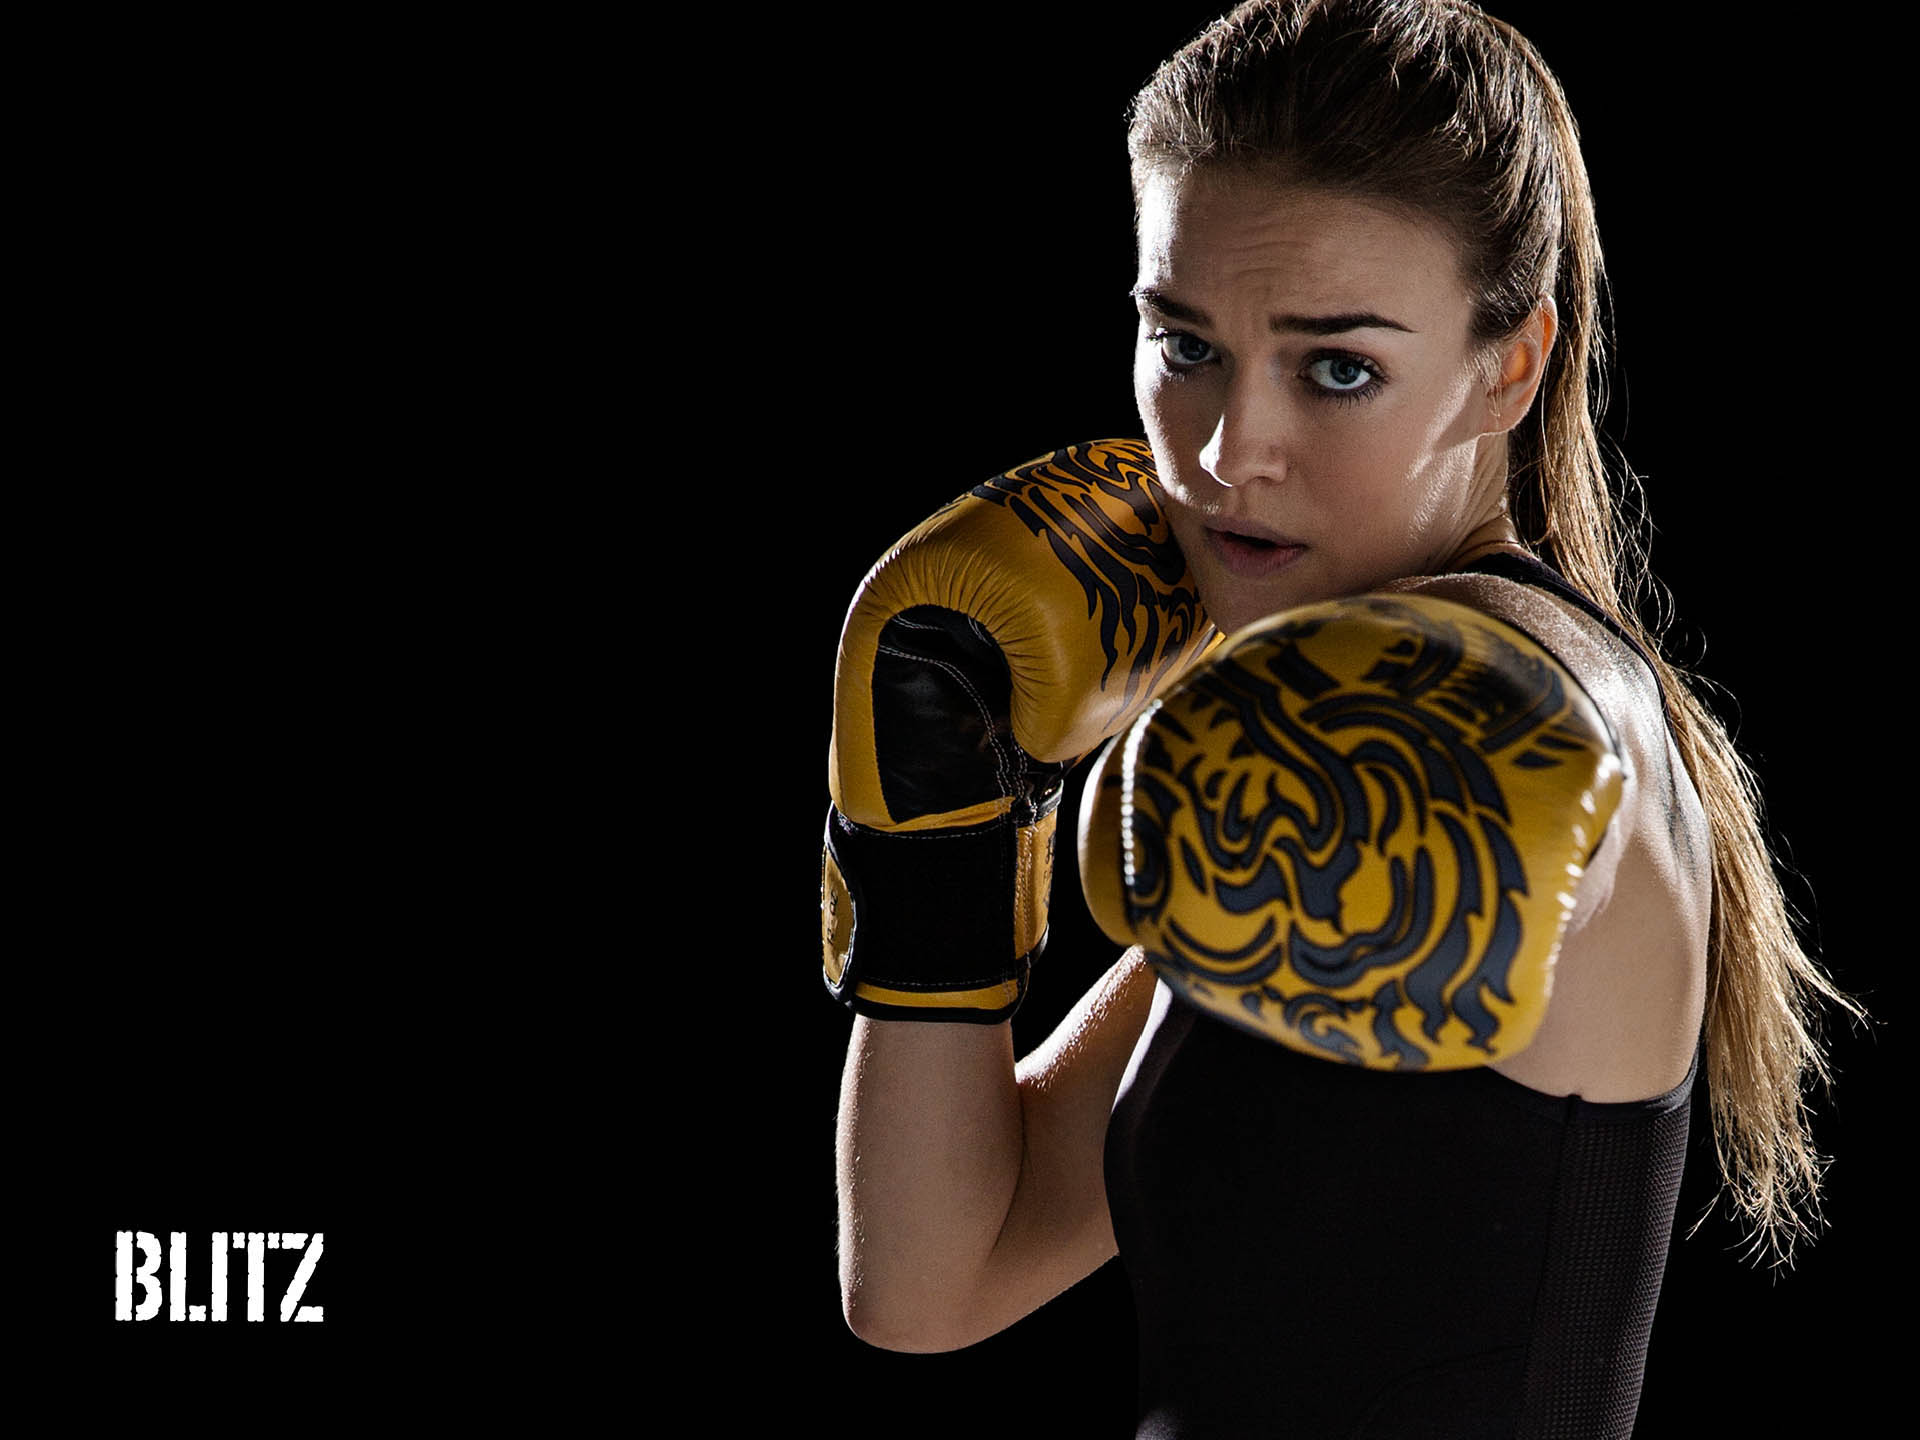 Skull Wallpaper For Girls Download The Latest Martial Arts Wallpapers From Blitz